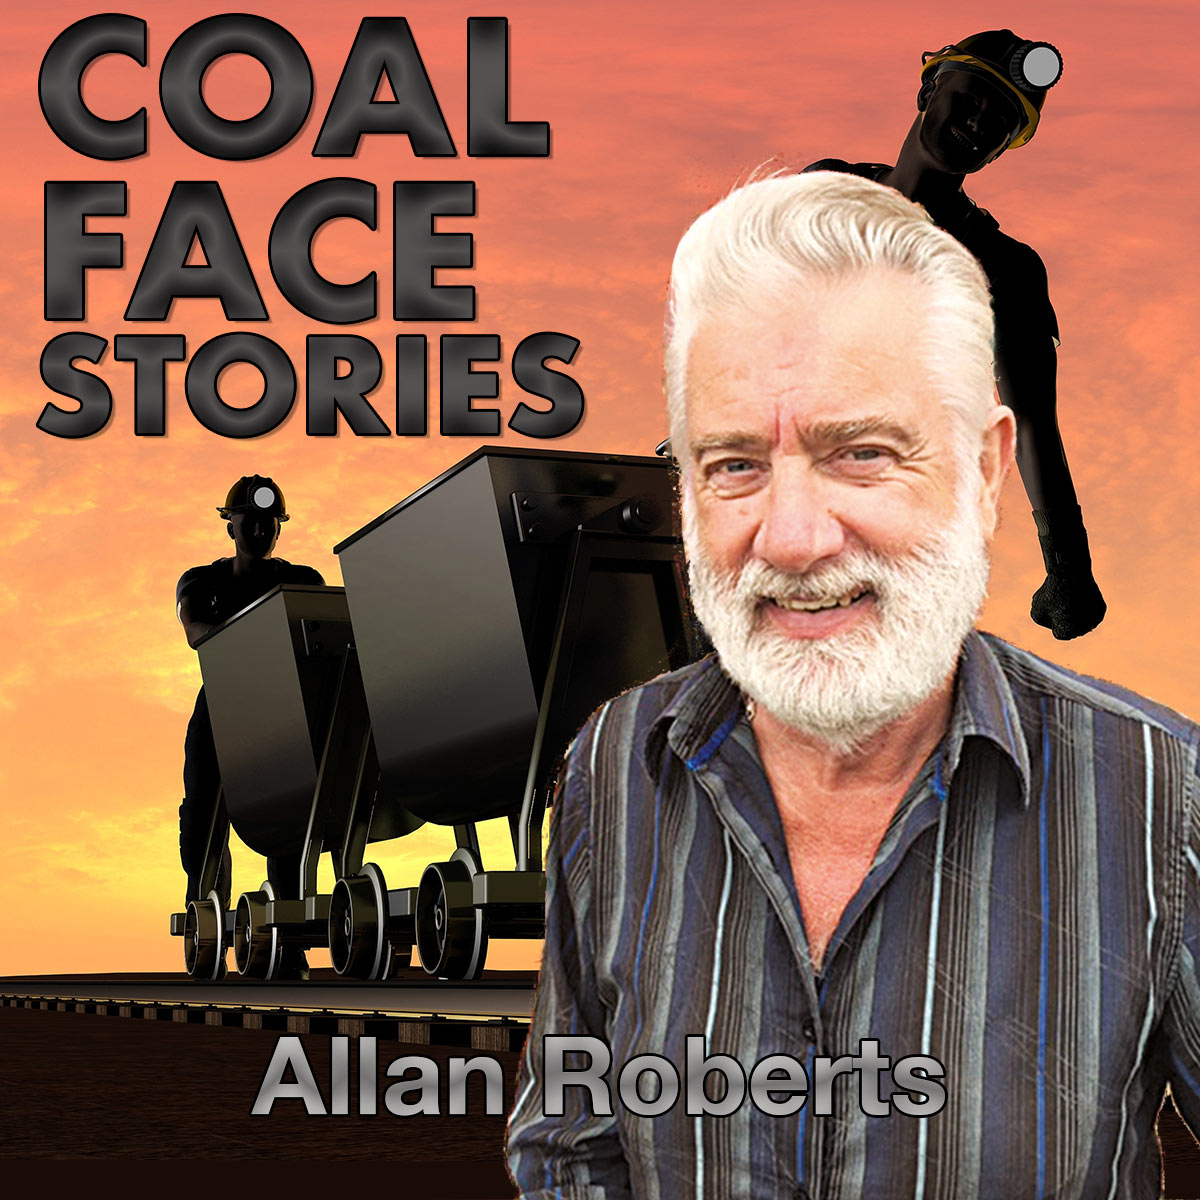 Allan Roberts on the Coal Face Stories Podcast